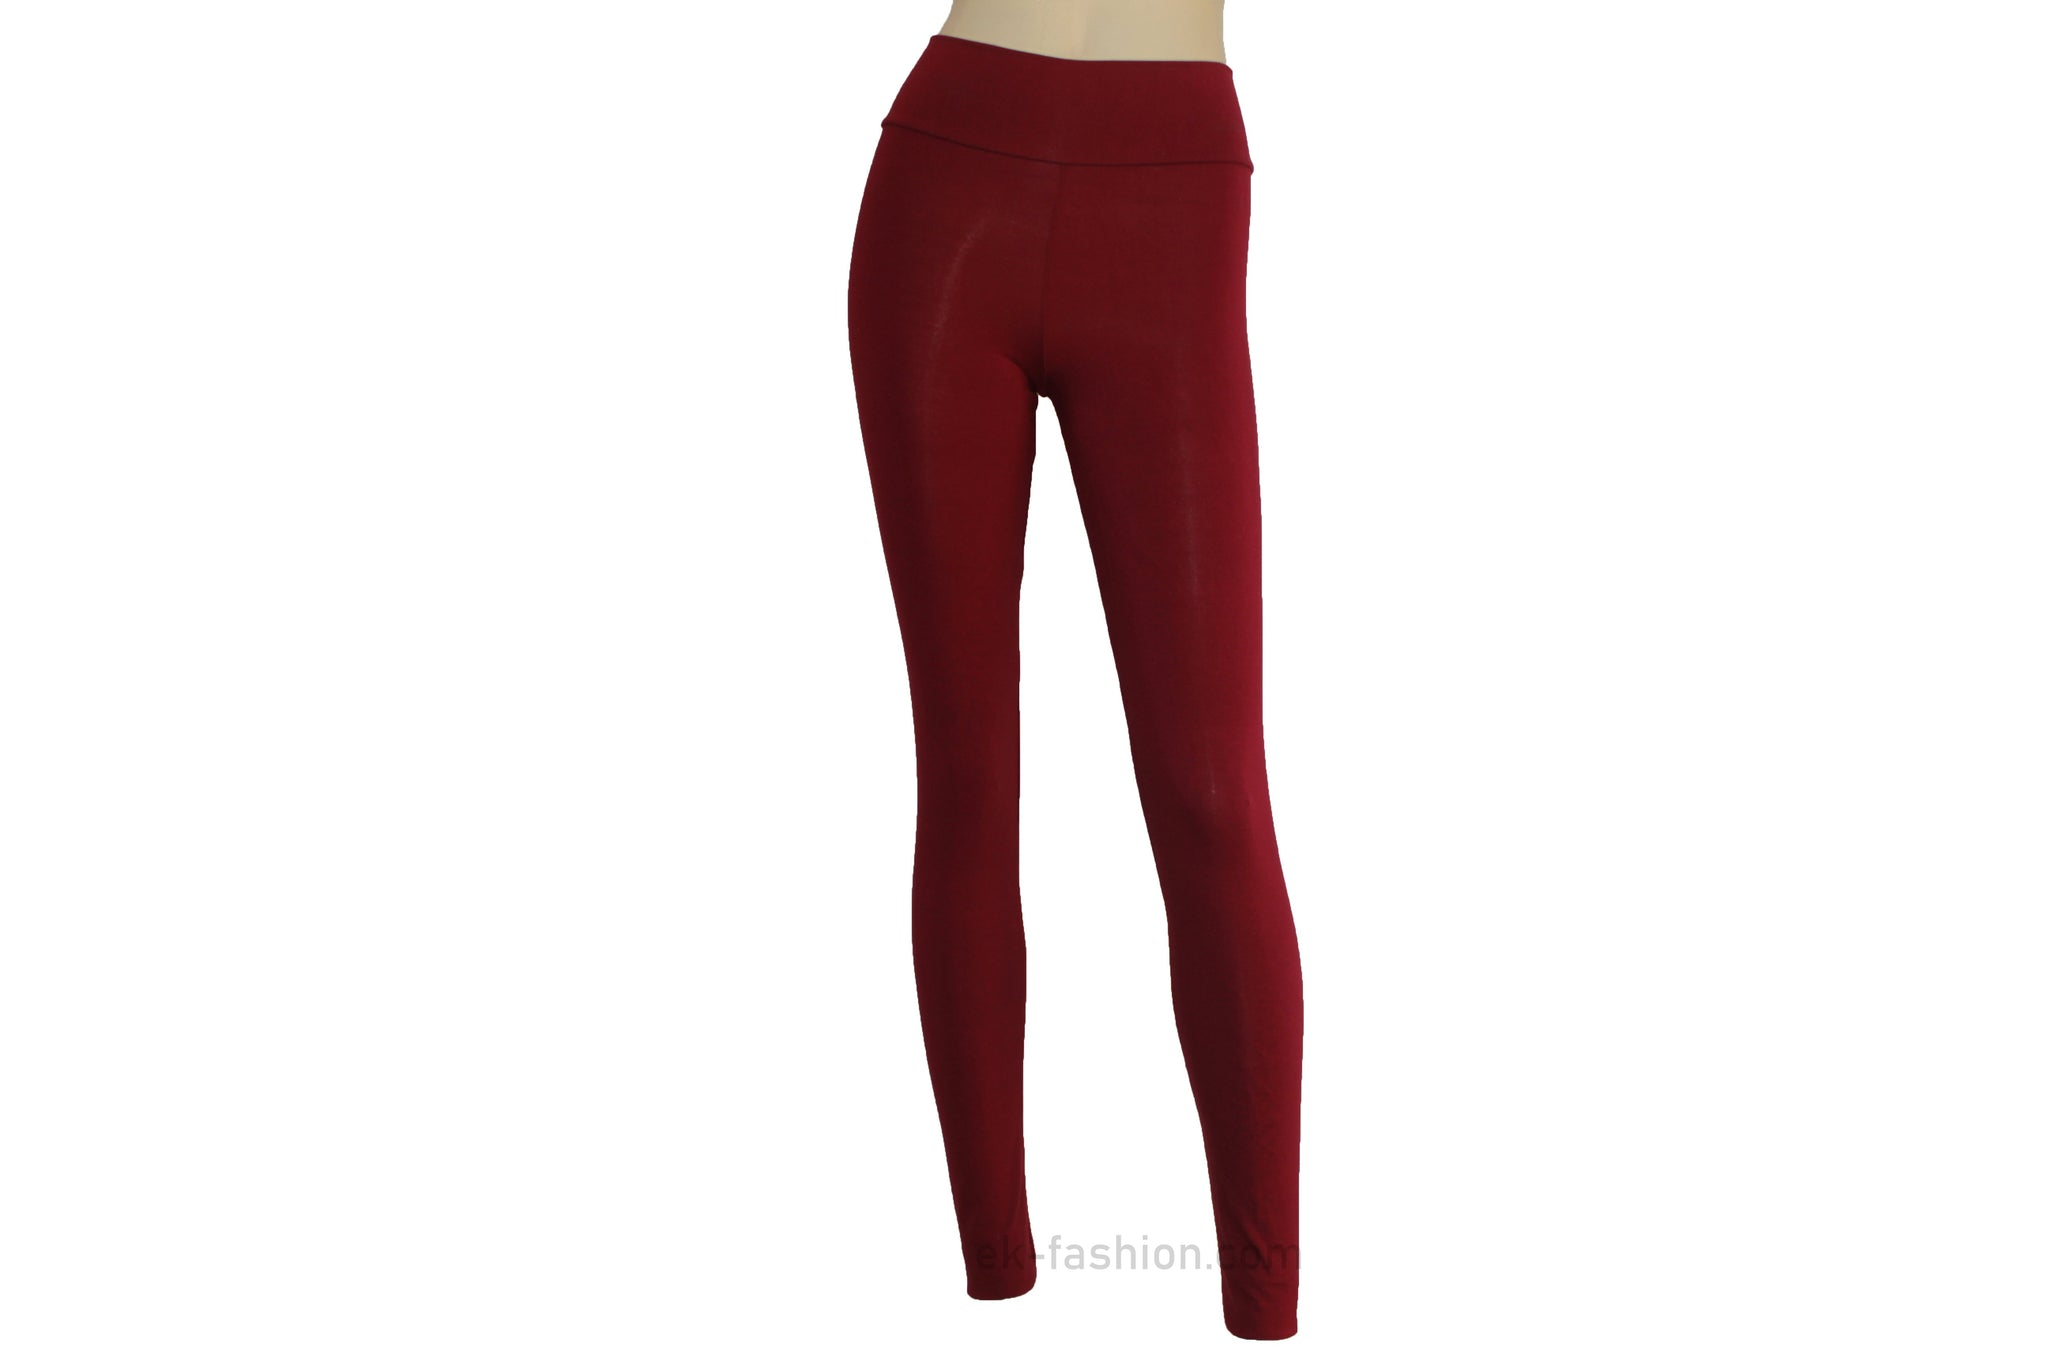 Yoga leggings Burgundy tights Plus size high waist pants Wine jersey activewear Ballet leggings